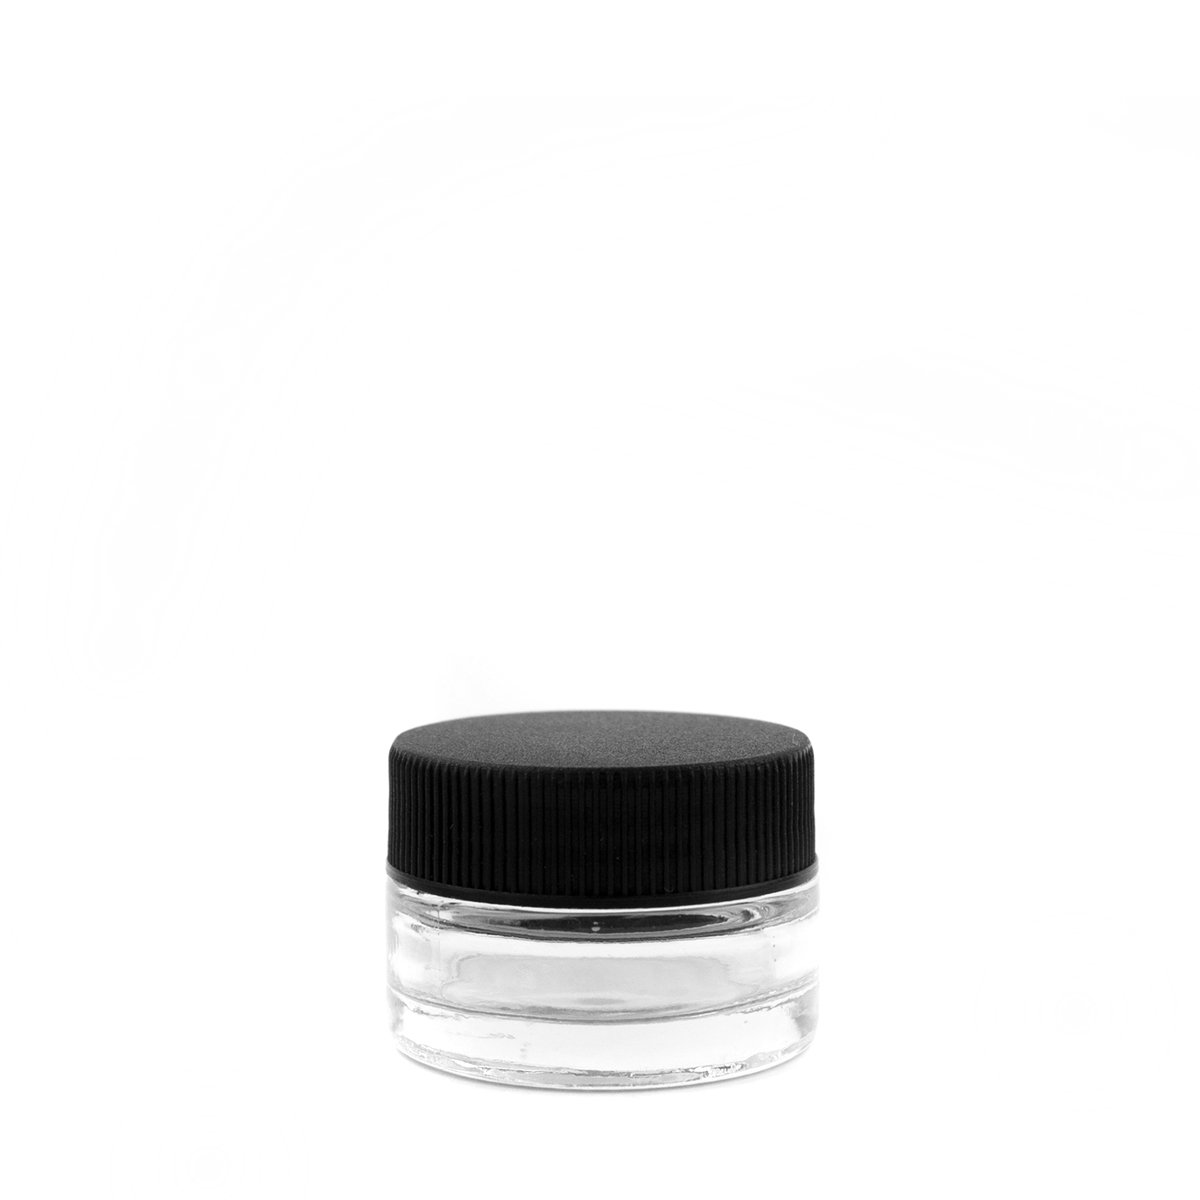 7mL Black Plastic Top Clear Glass Jar Container